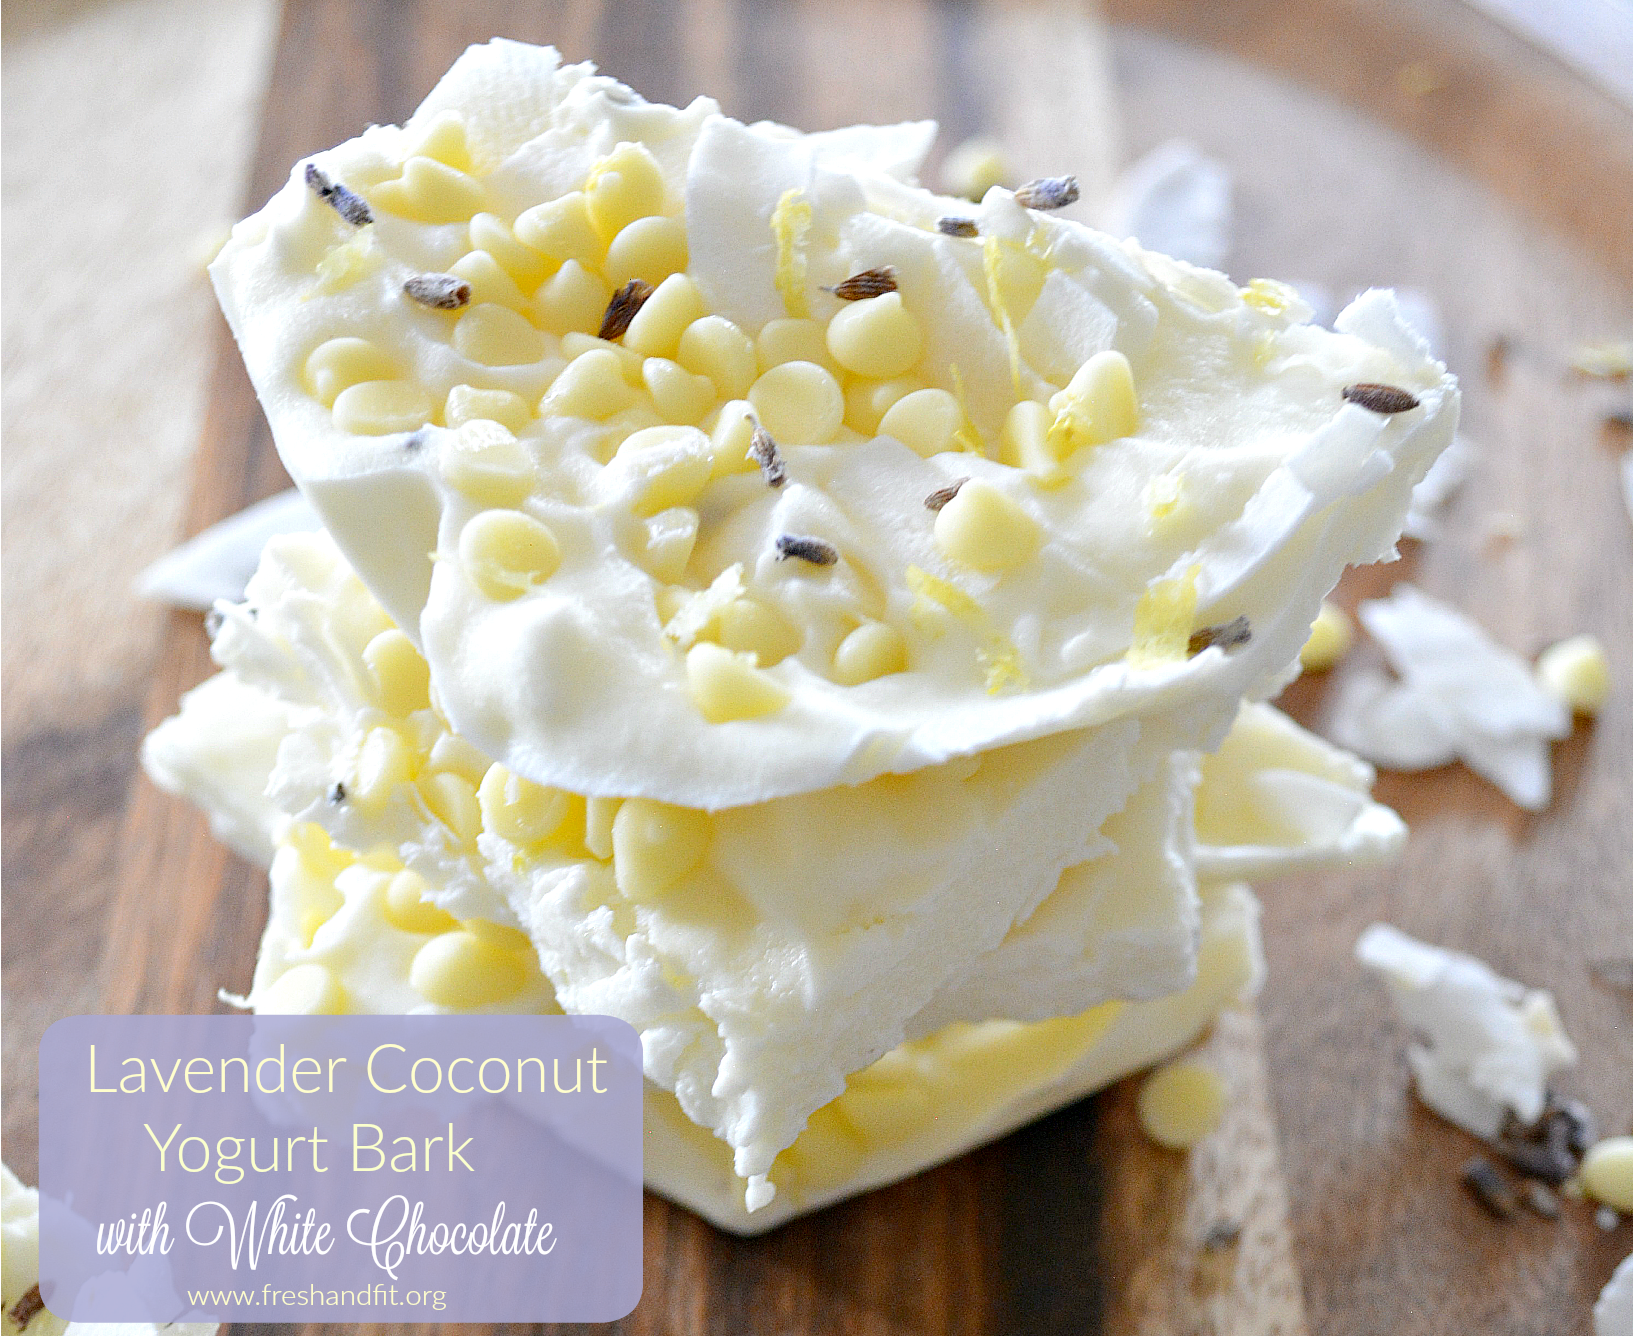 Lavender Coconut Yogurt Bark with White Chocolate - Fresh and Fit